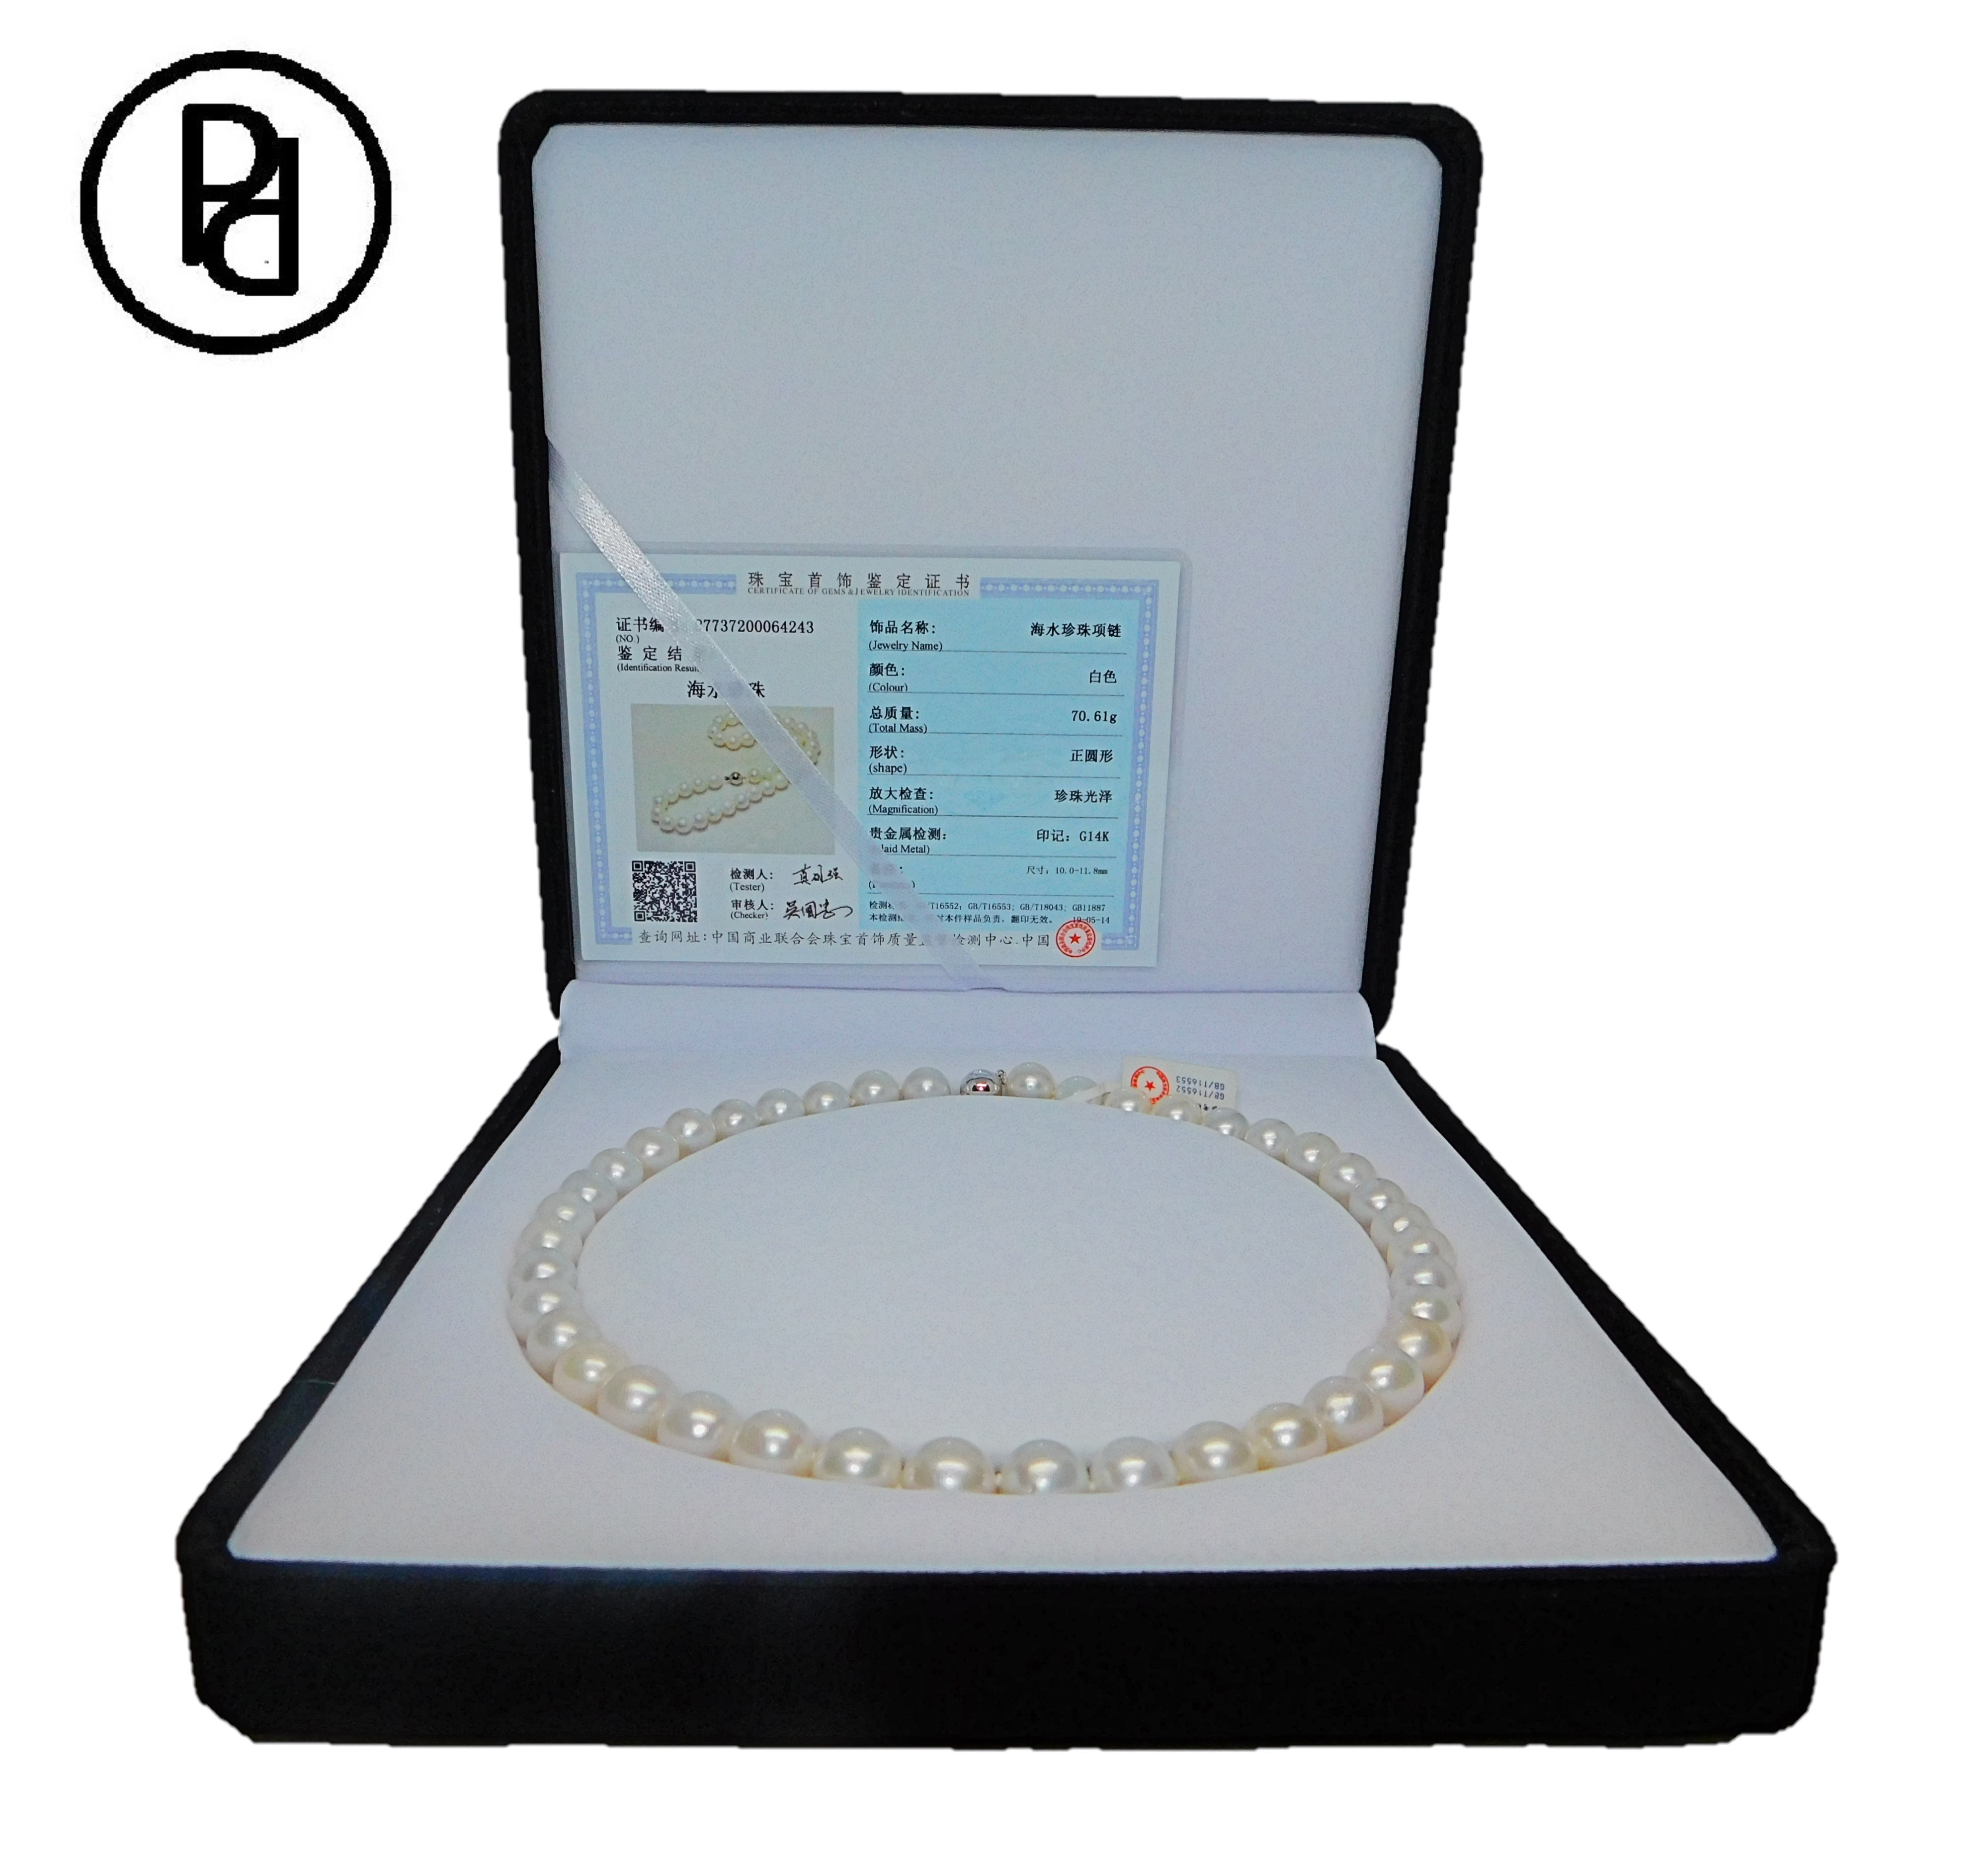 This gorgeous necklace features 11.0-12.0mm white Freshwater pearls, handpicked for their luminous luster